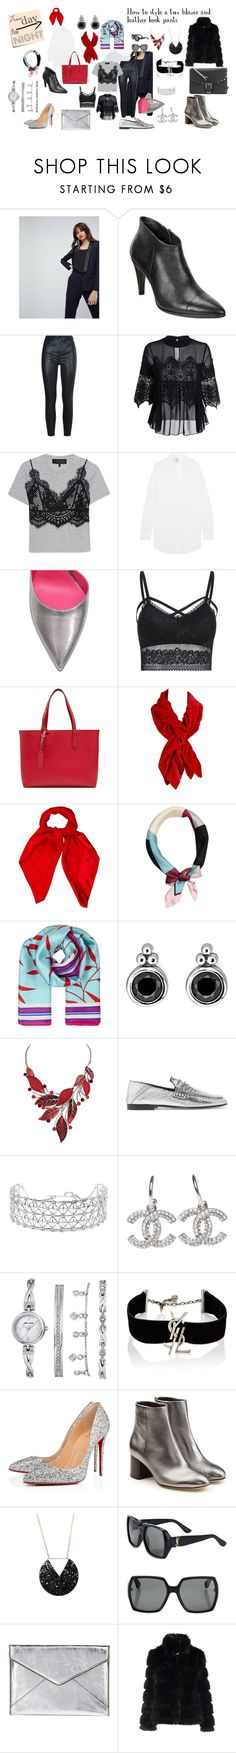 """""""From Day to Night"""" by larisa-inic on Polyvore featuring ASOS, ECCO, Kendall + Kylie, Vetements, Oscar Tiye, Burberry, INC International Concepts, Louis Vuitton, Diane Von Furstenberg and Thomas Sabo"""